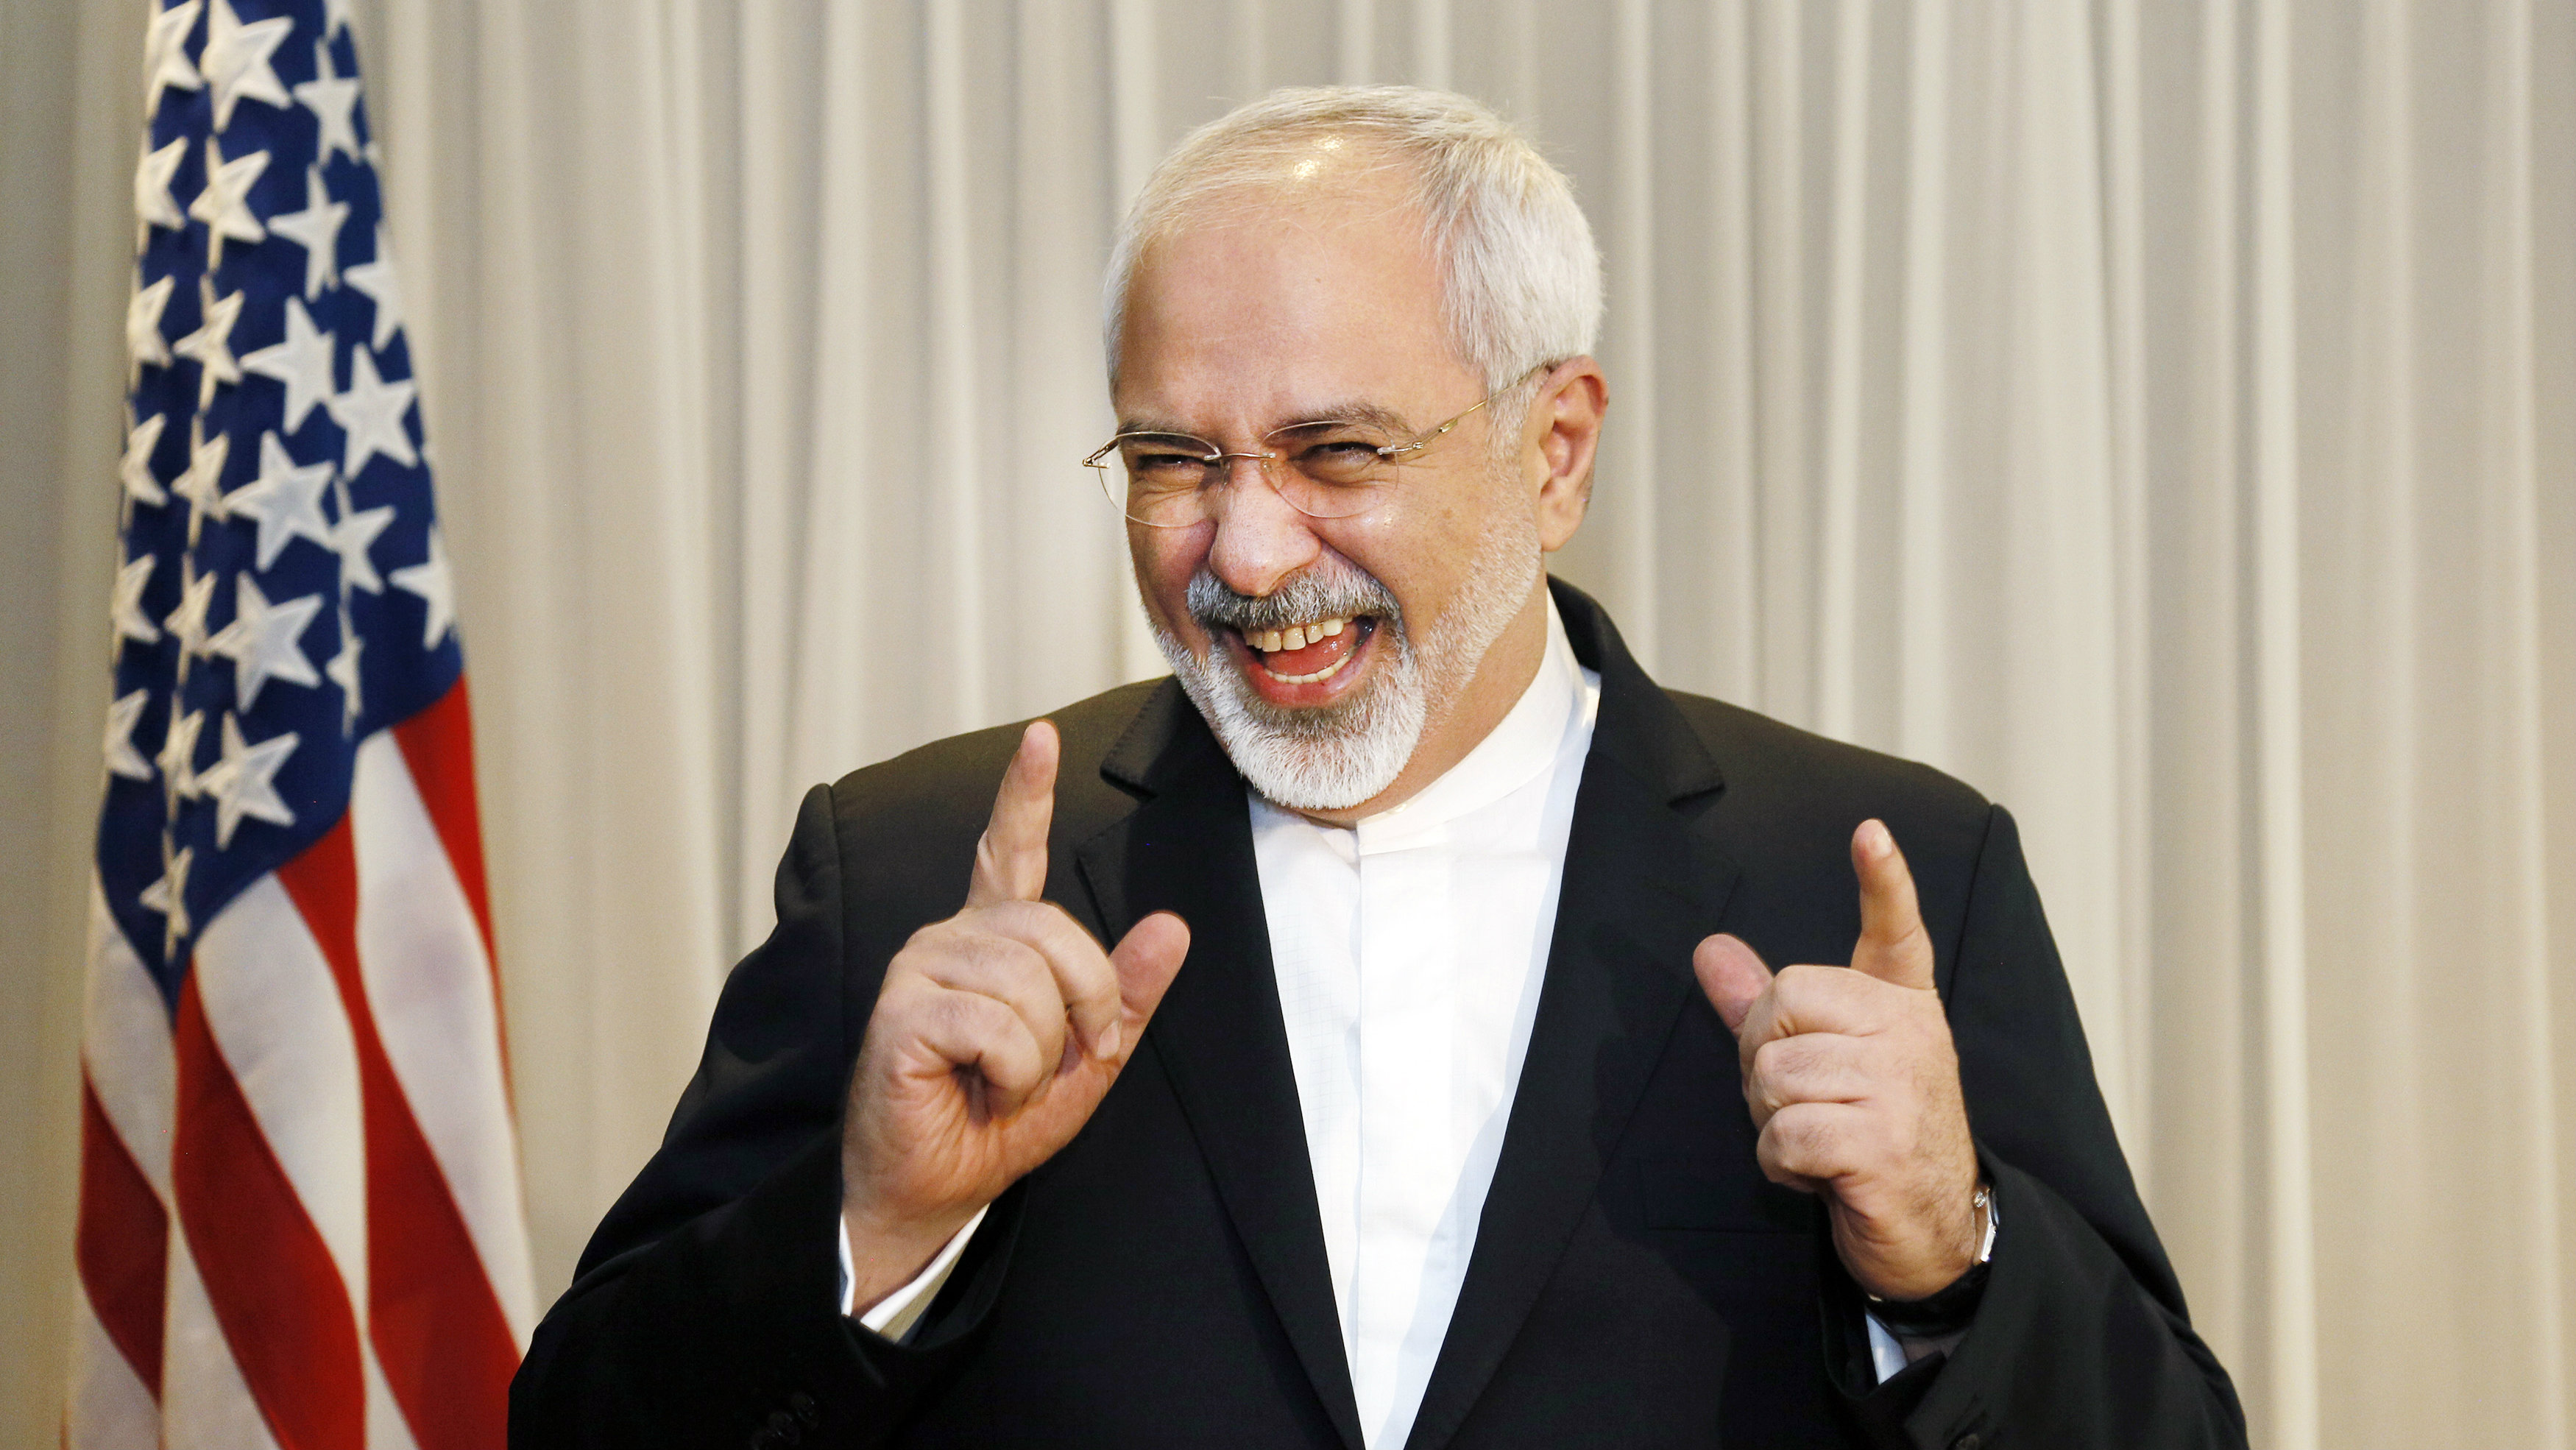 Iranian Foreign Minister Mohammad Javad Zarif talks with reporters before meeting with U.S. Secretary of State John Kerry in Geneva January 14, 2015.